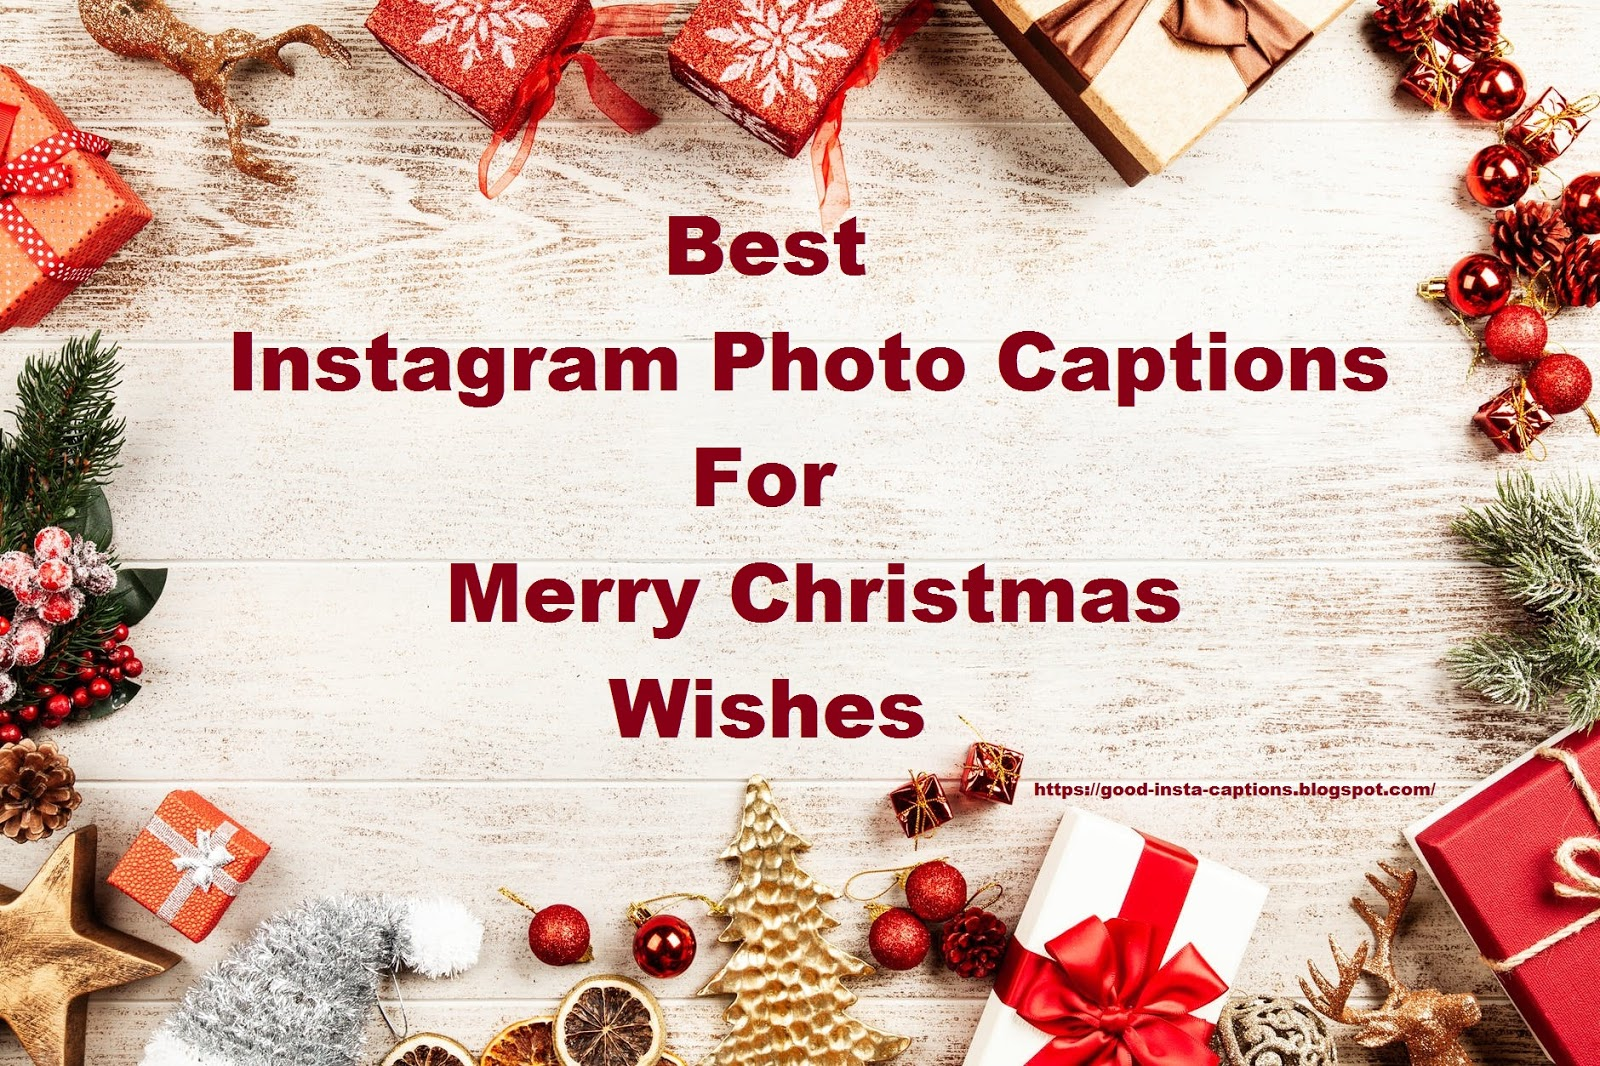 200+ Best Merry Christmas Quotes For Instagram Photo Captions